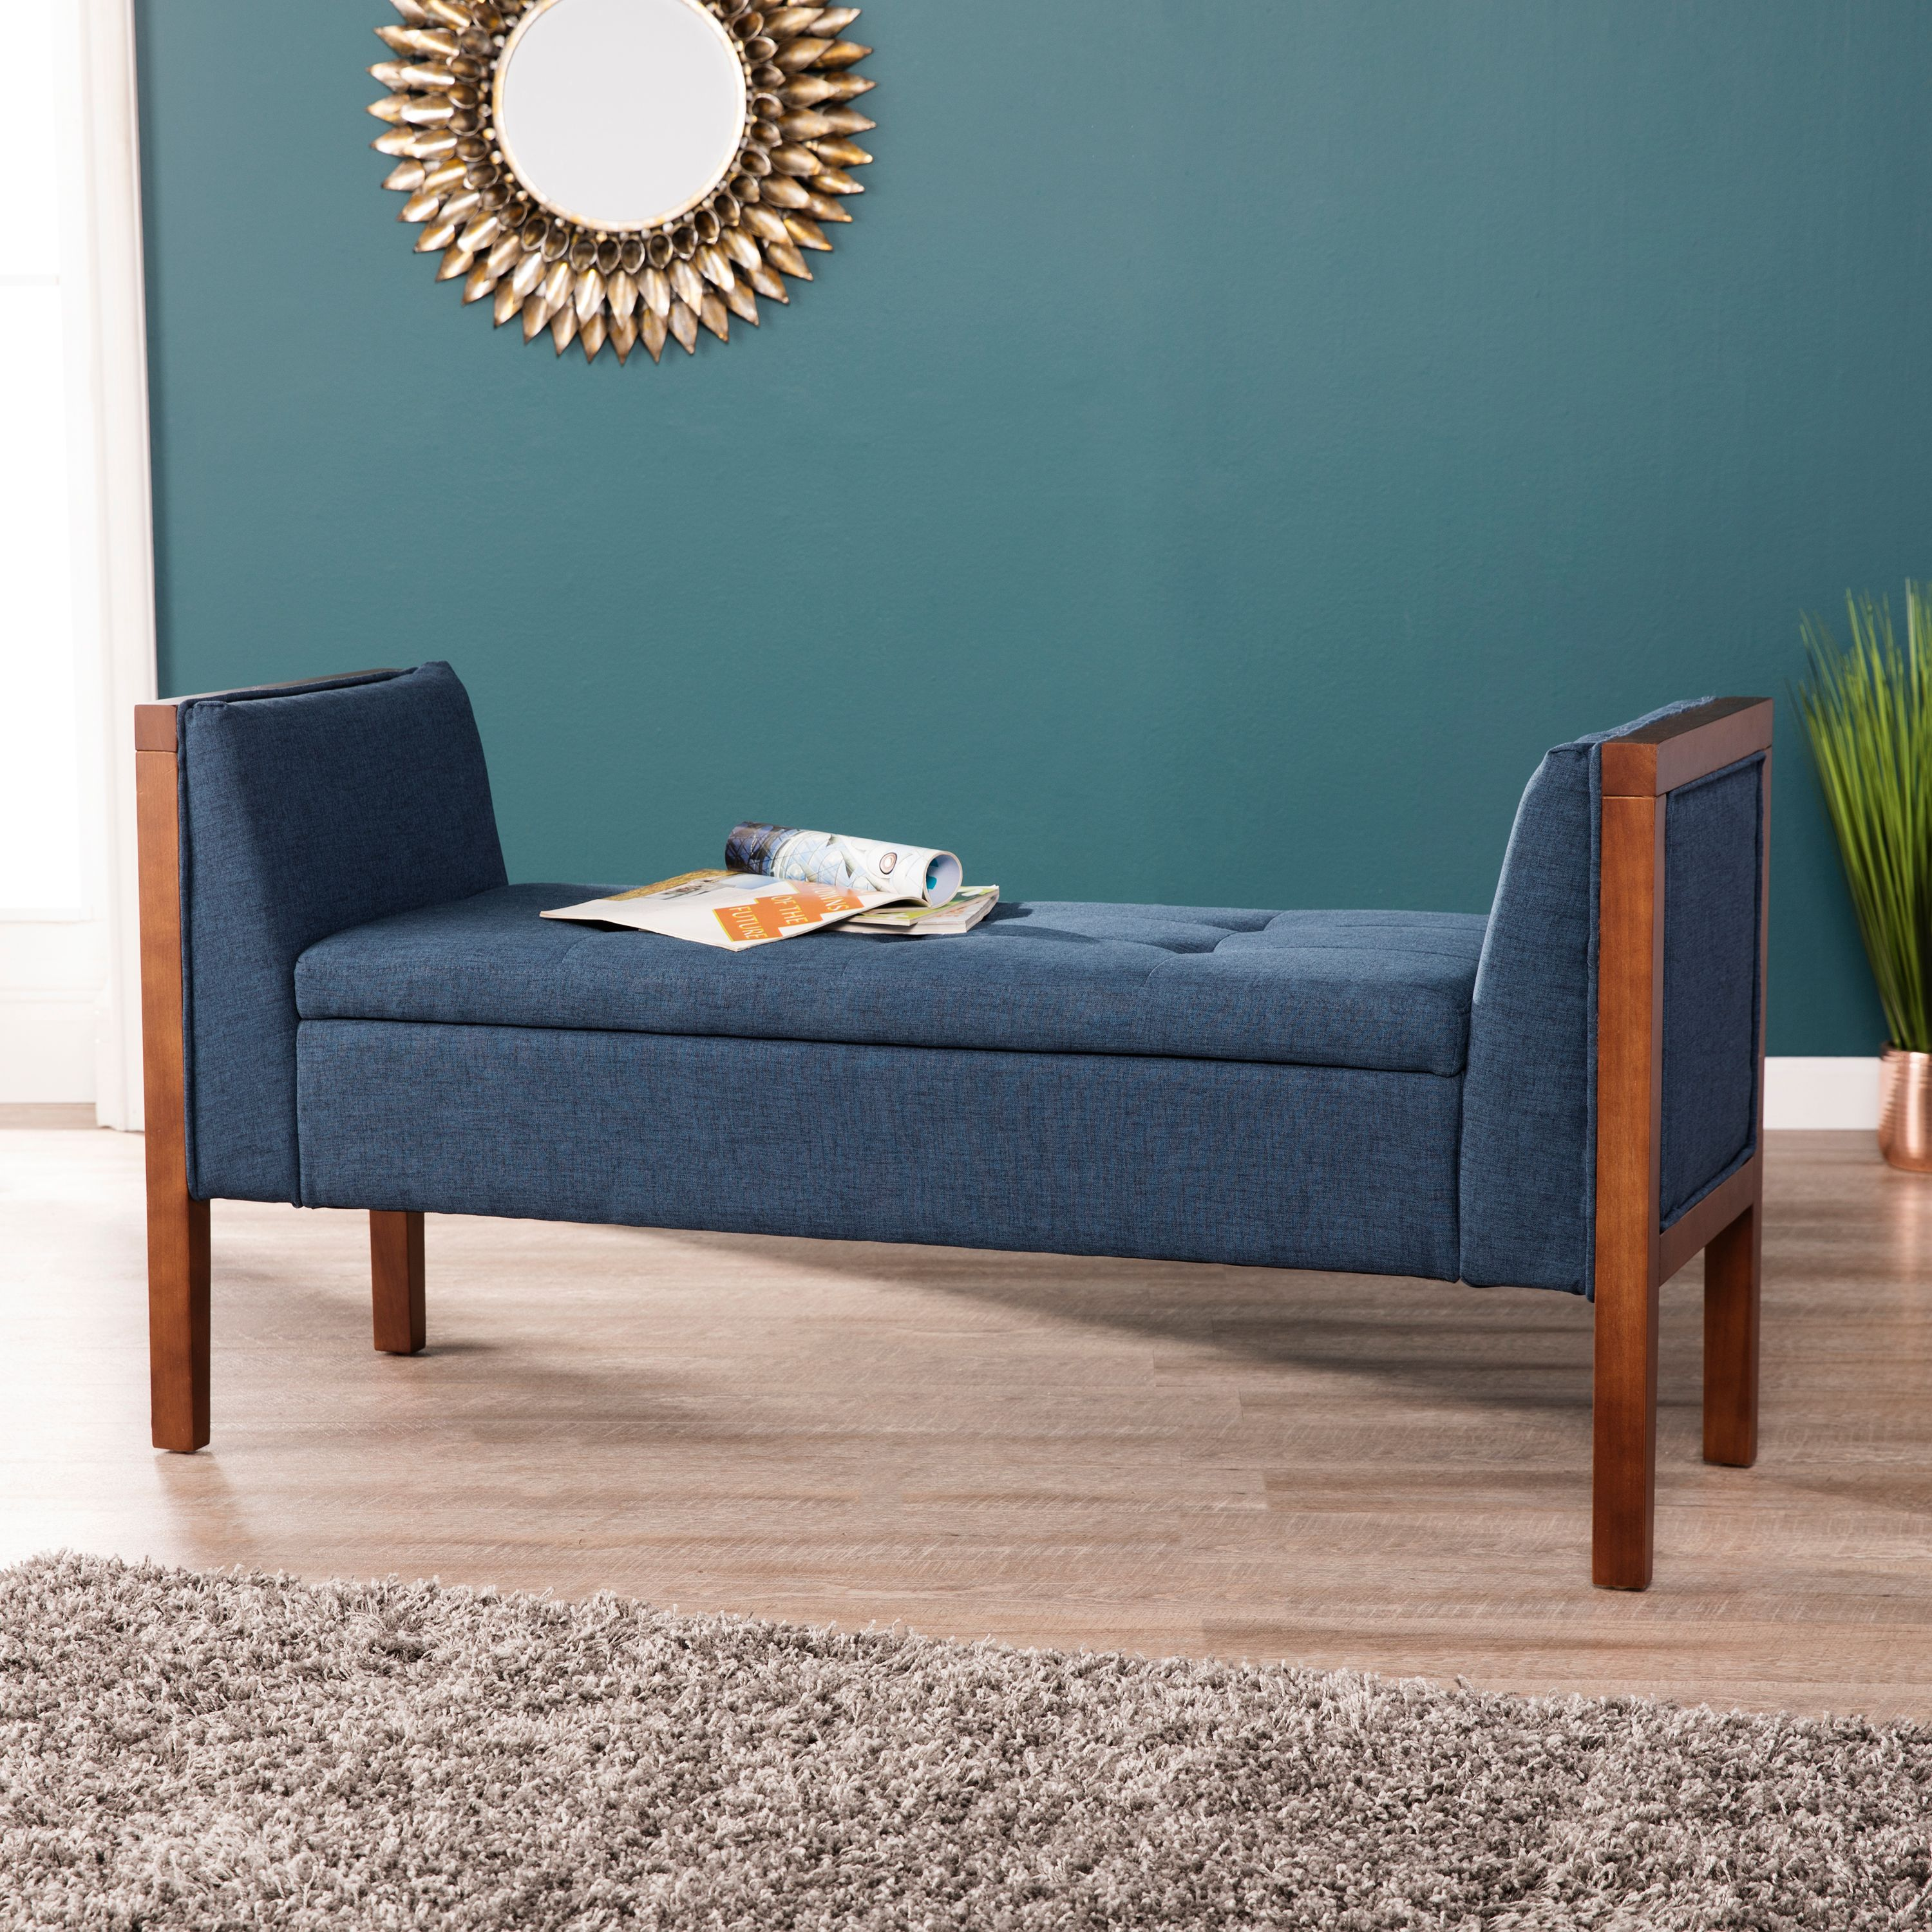 Transitional Foyer Hallway: Letto Upholstered Entryway Bench, Transitional Style, Blue